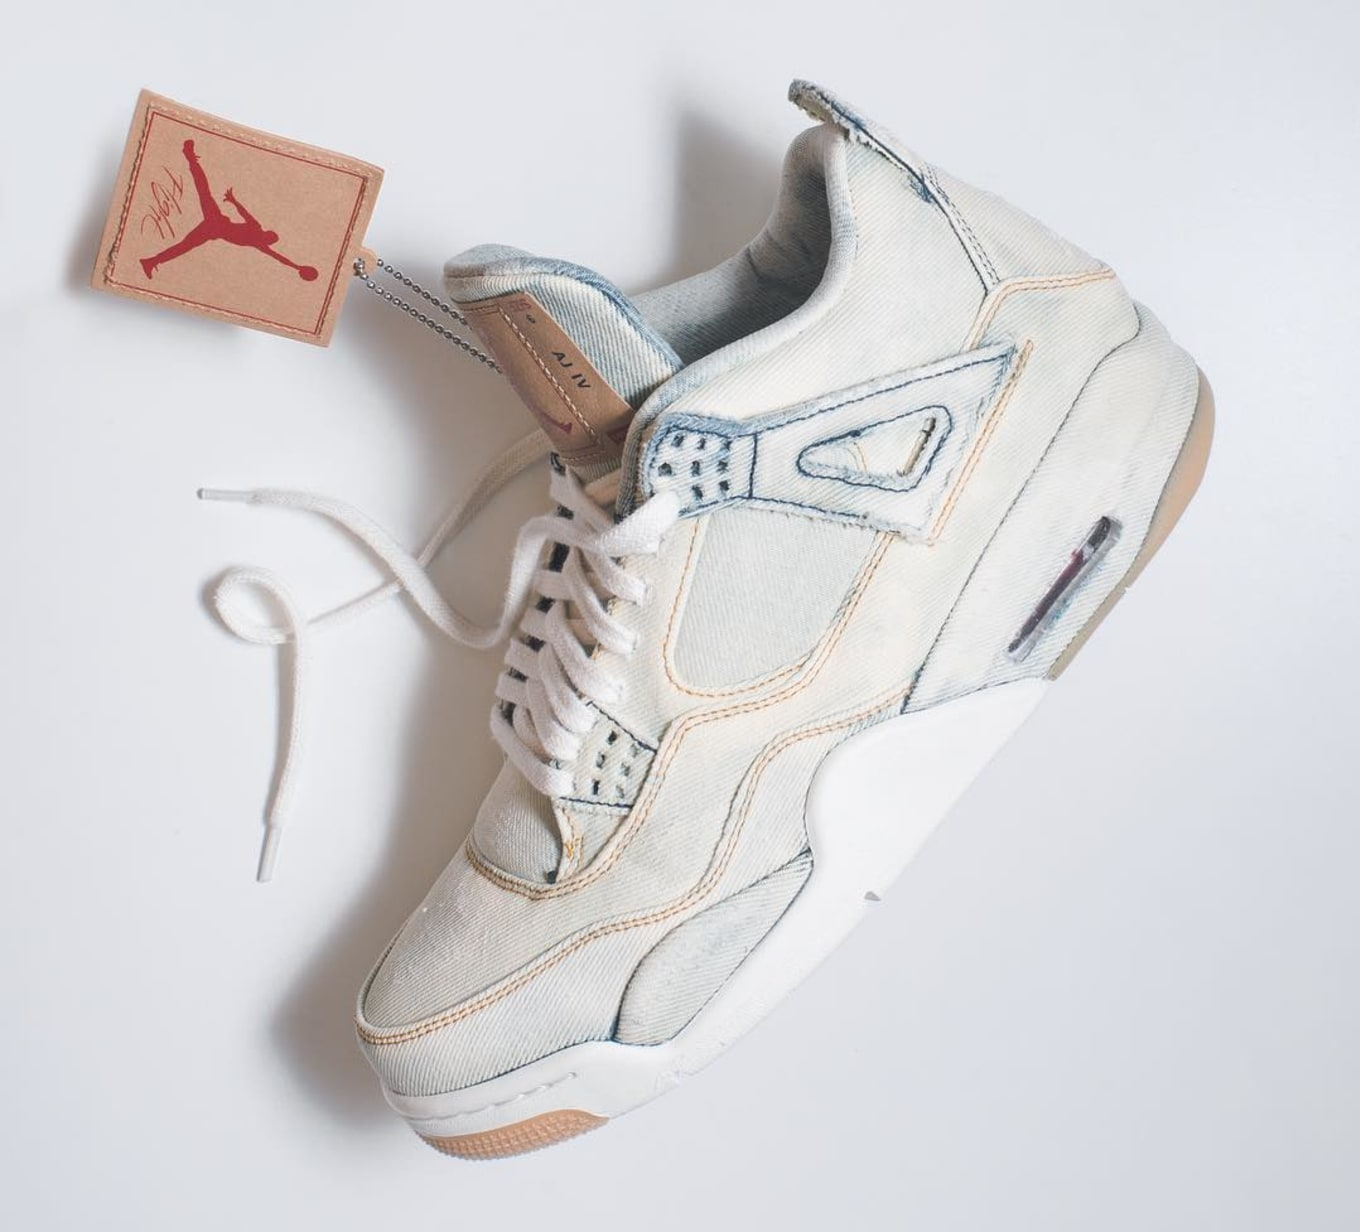 24b240585dc What the Levi's x Air Jordan 4 Looks Like with Bleached Denim. The latest  customization of the collaboration.